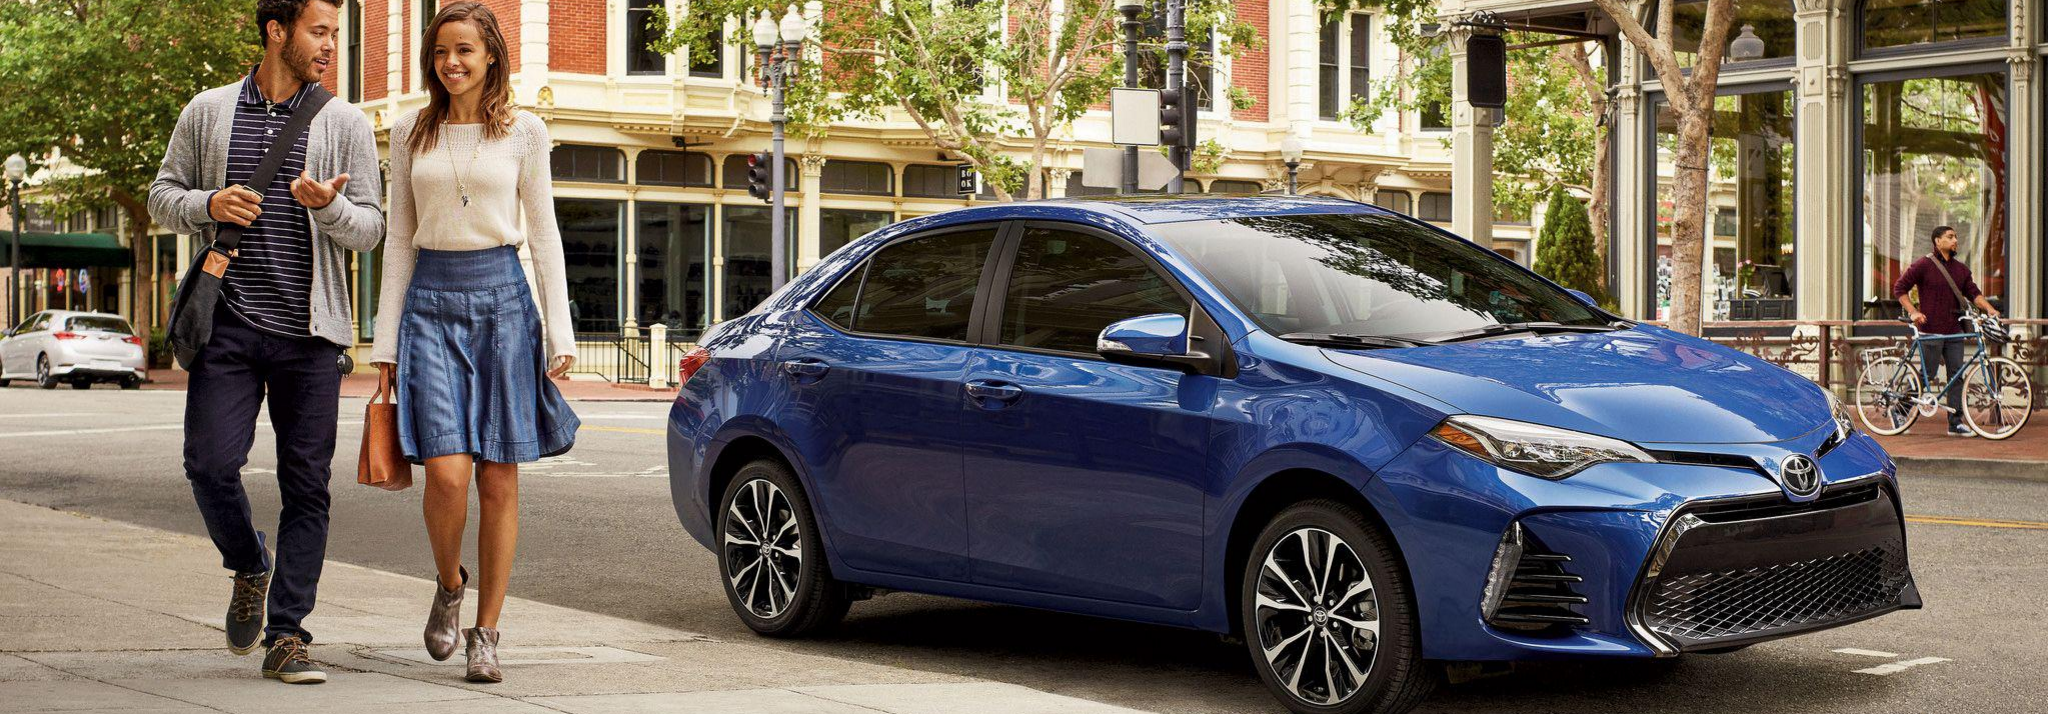 Get the new 2019 Toyota Corolla now at Capital Toyota in Chattanooga, Tennessee